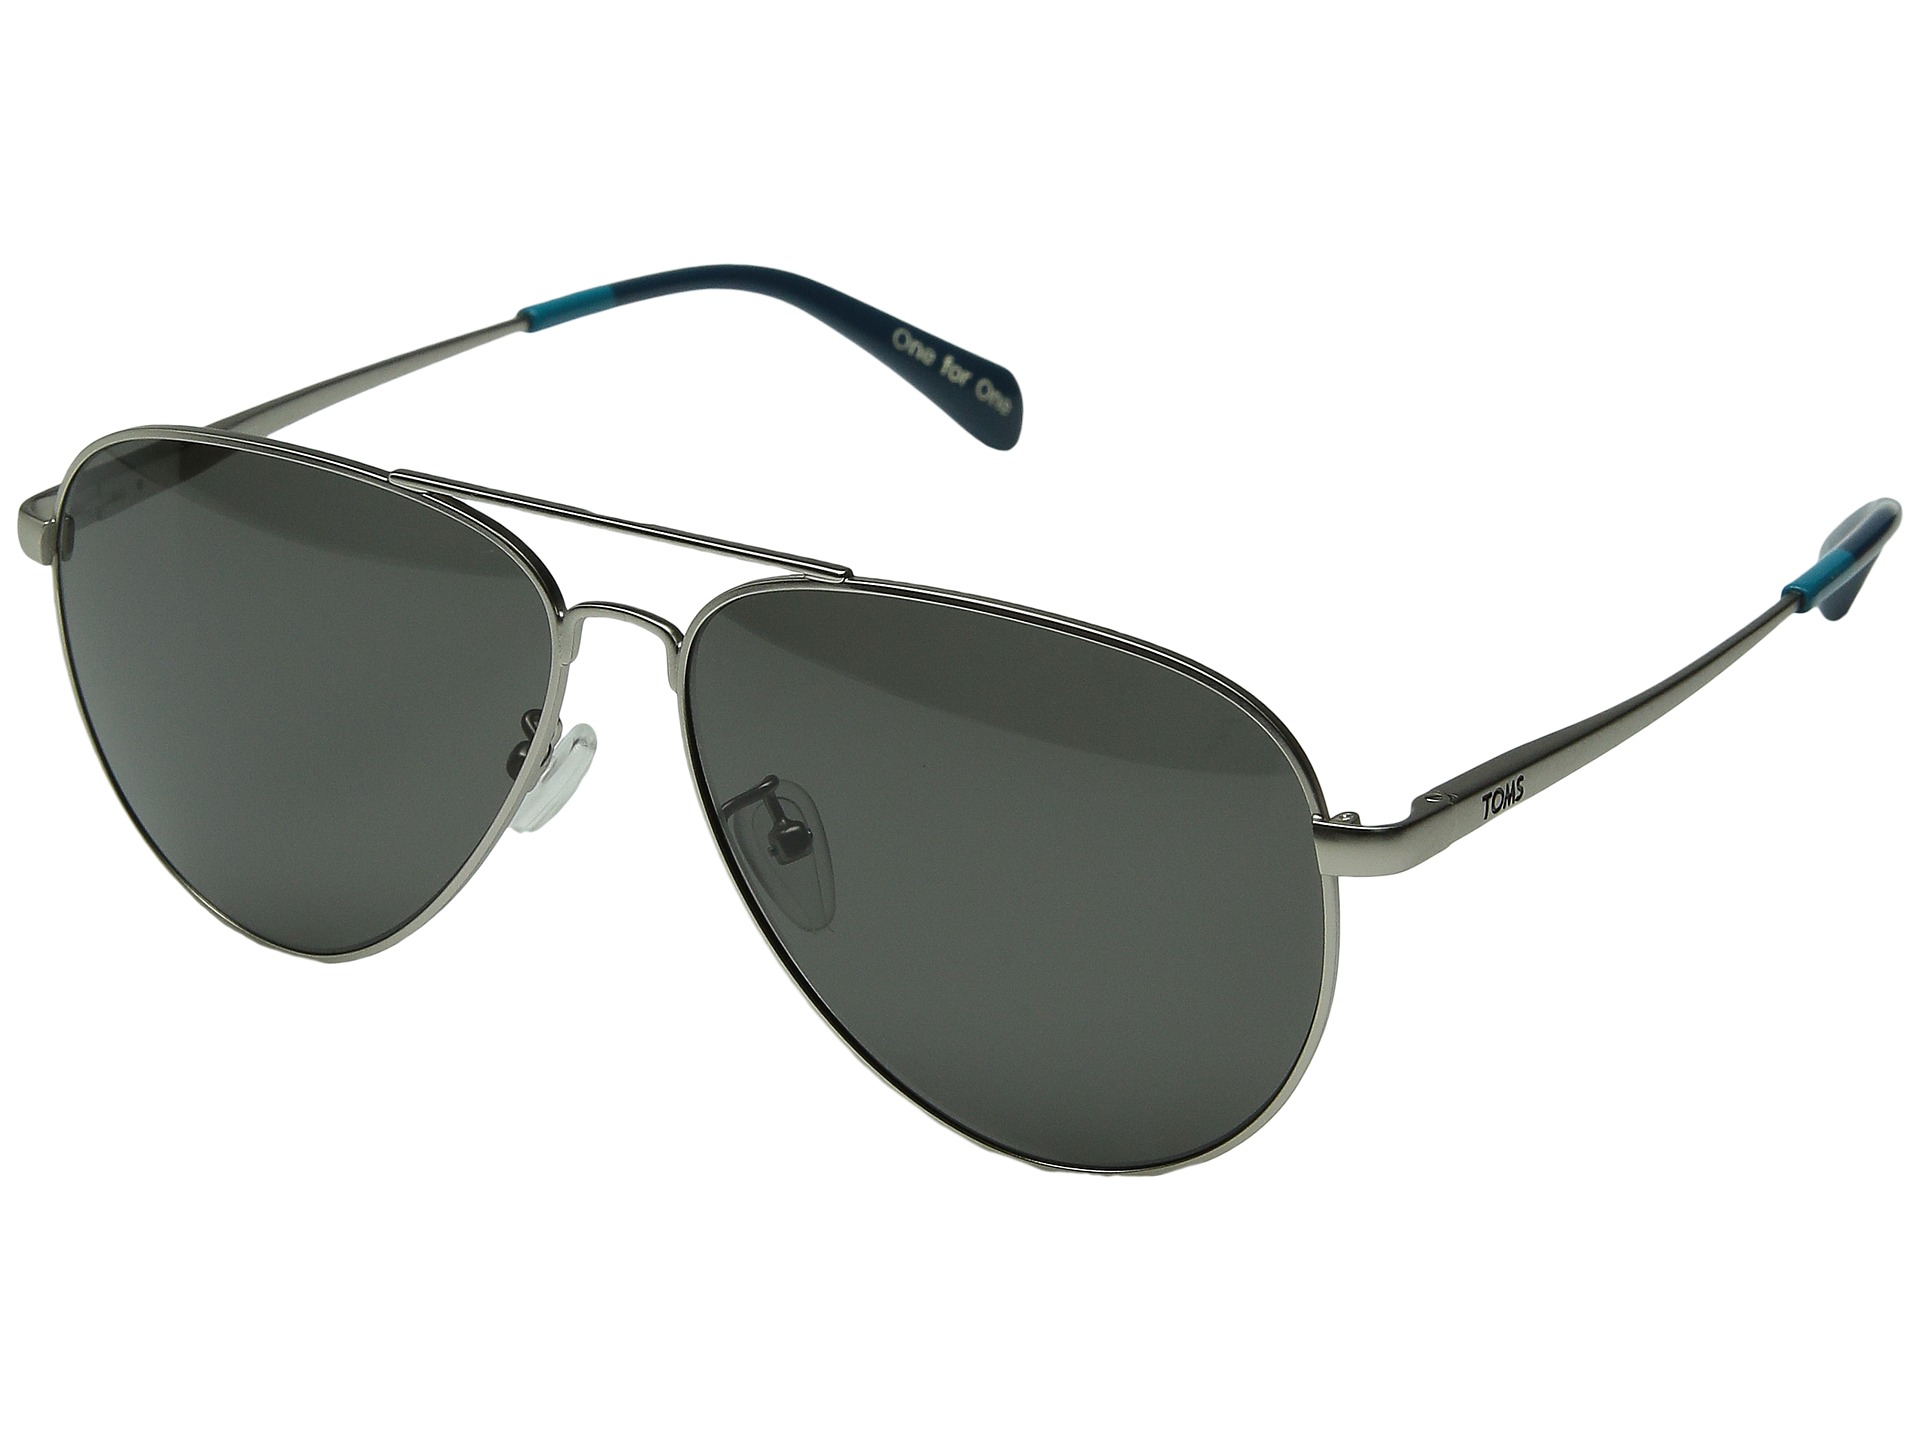 Toms Aviator Sunglasses  toms maverick 301 polarized zappos com free shipping both ways